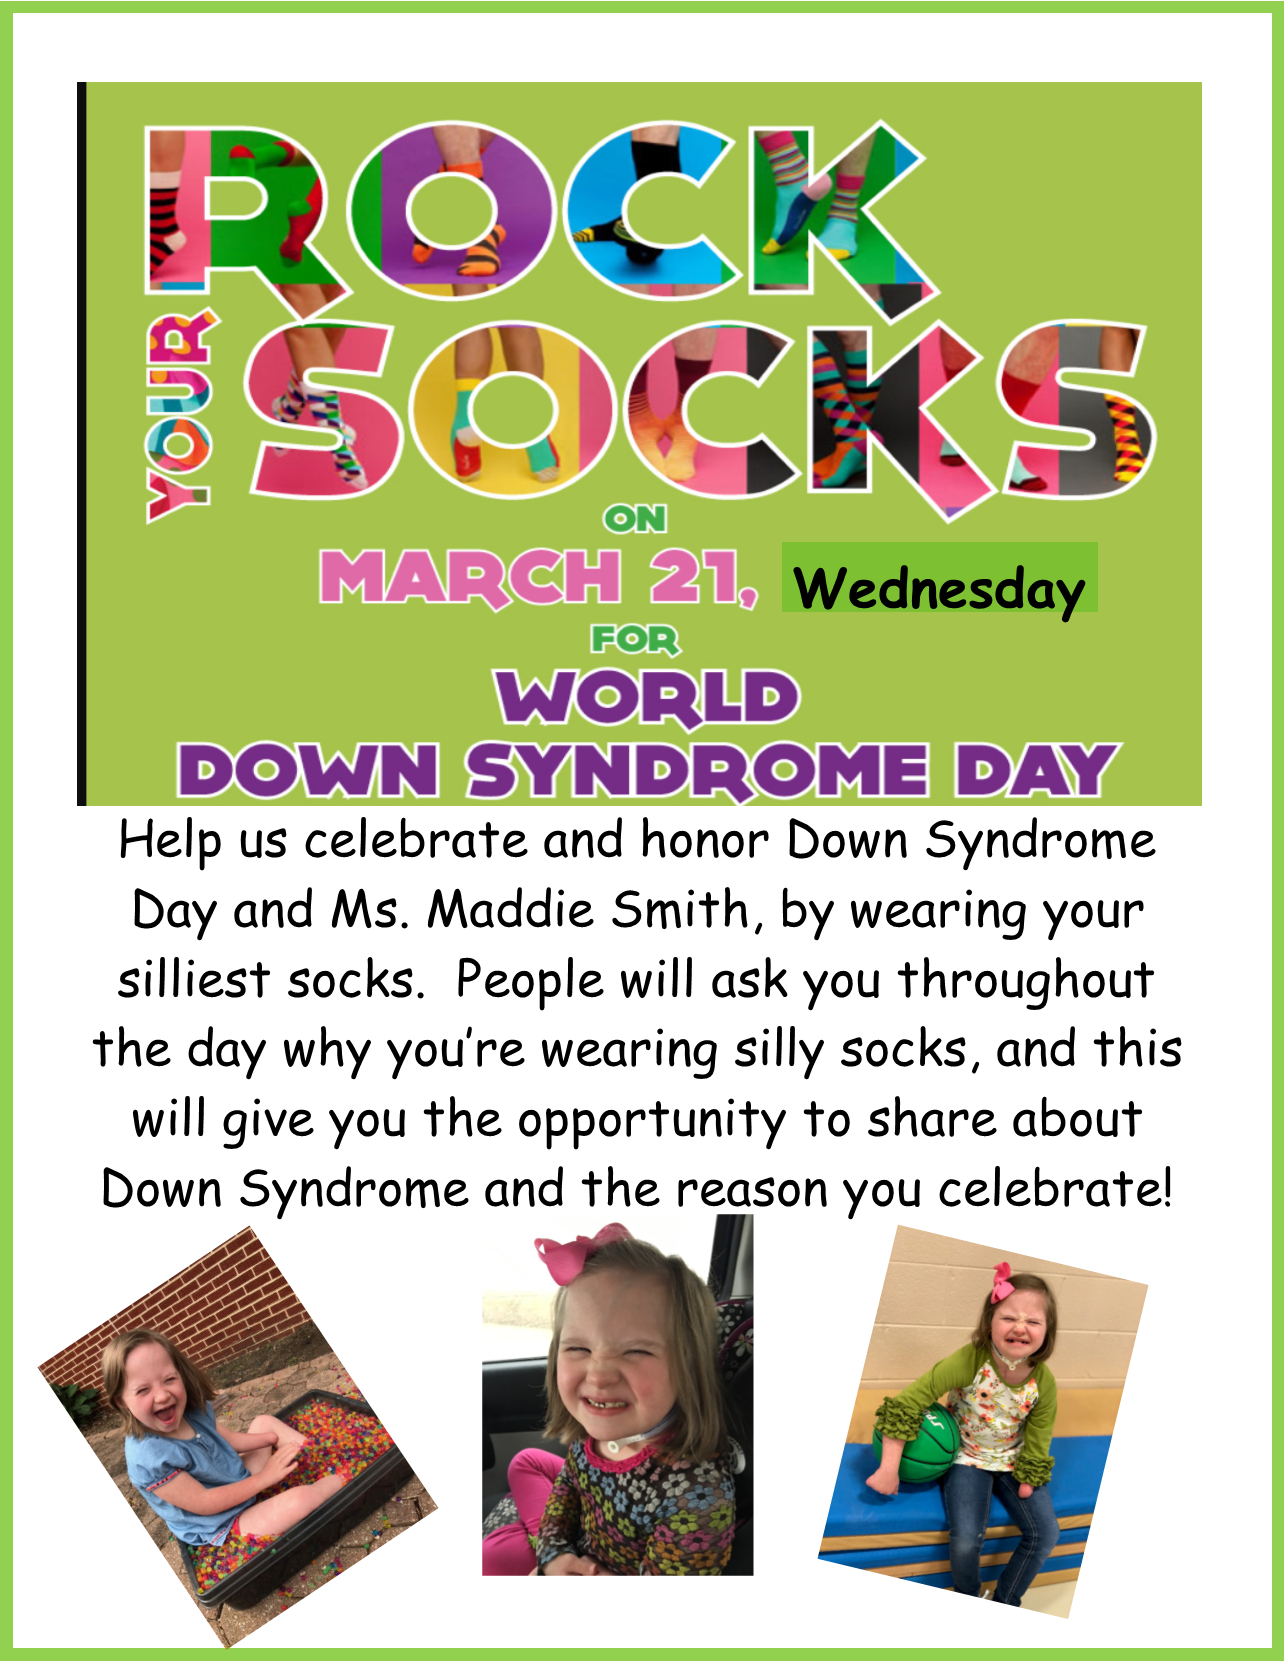 Wear your silliest socks to celebrate World Down Syndrome Day!